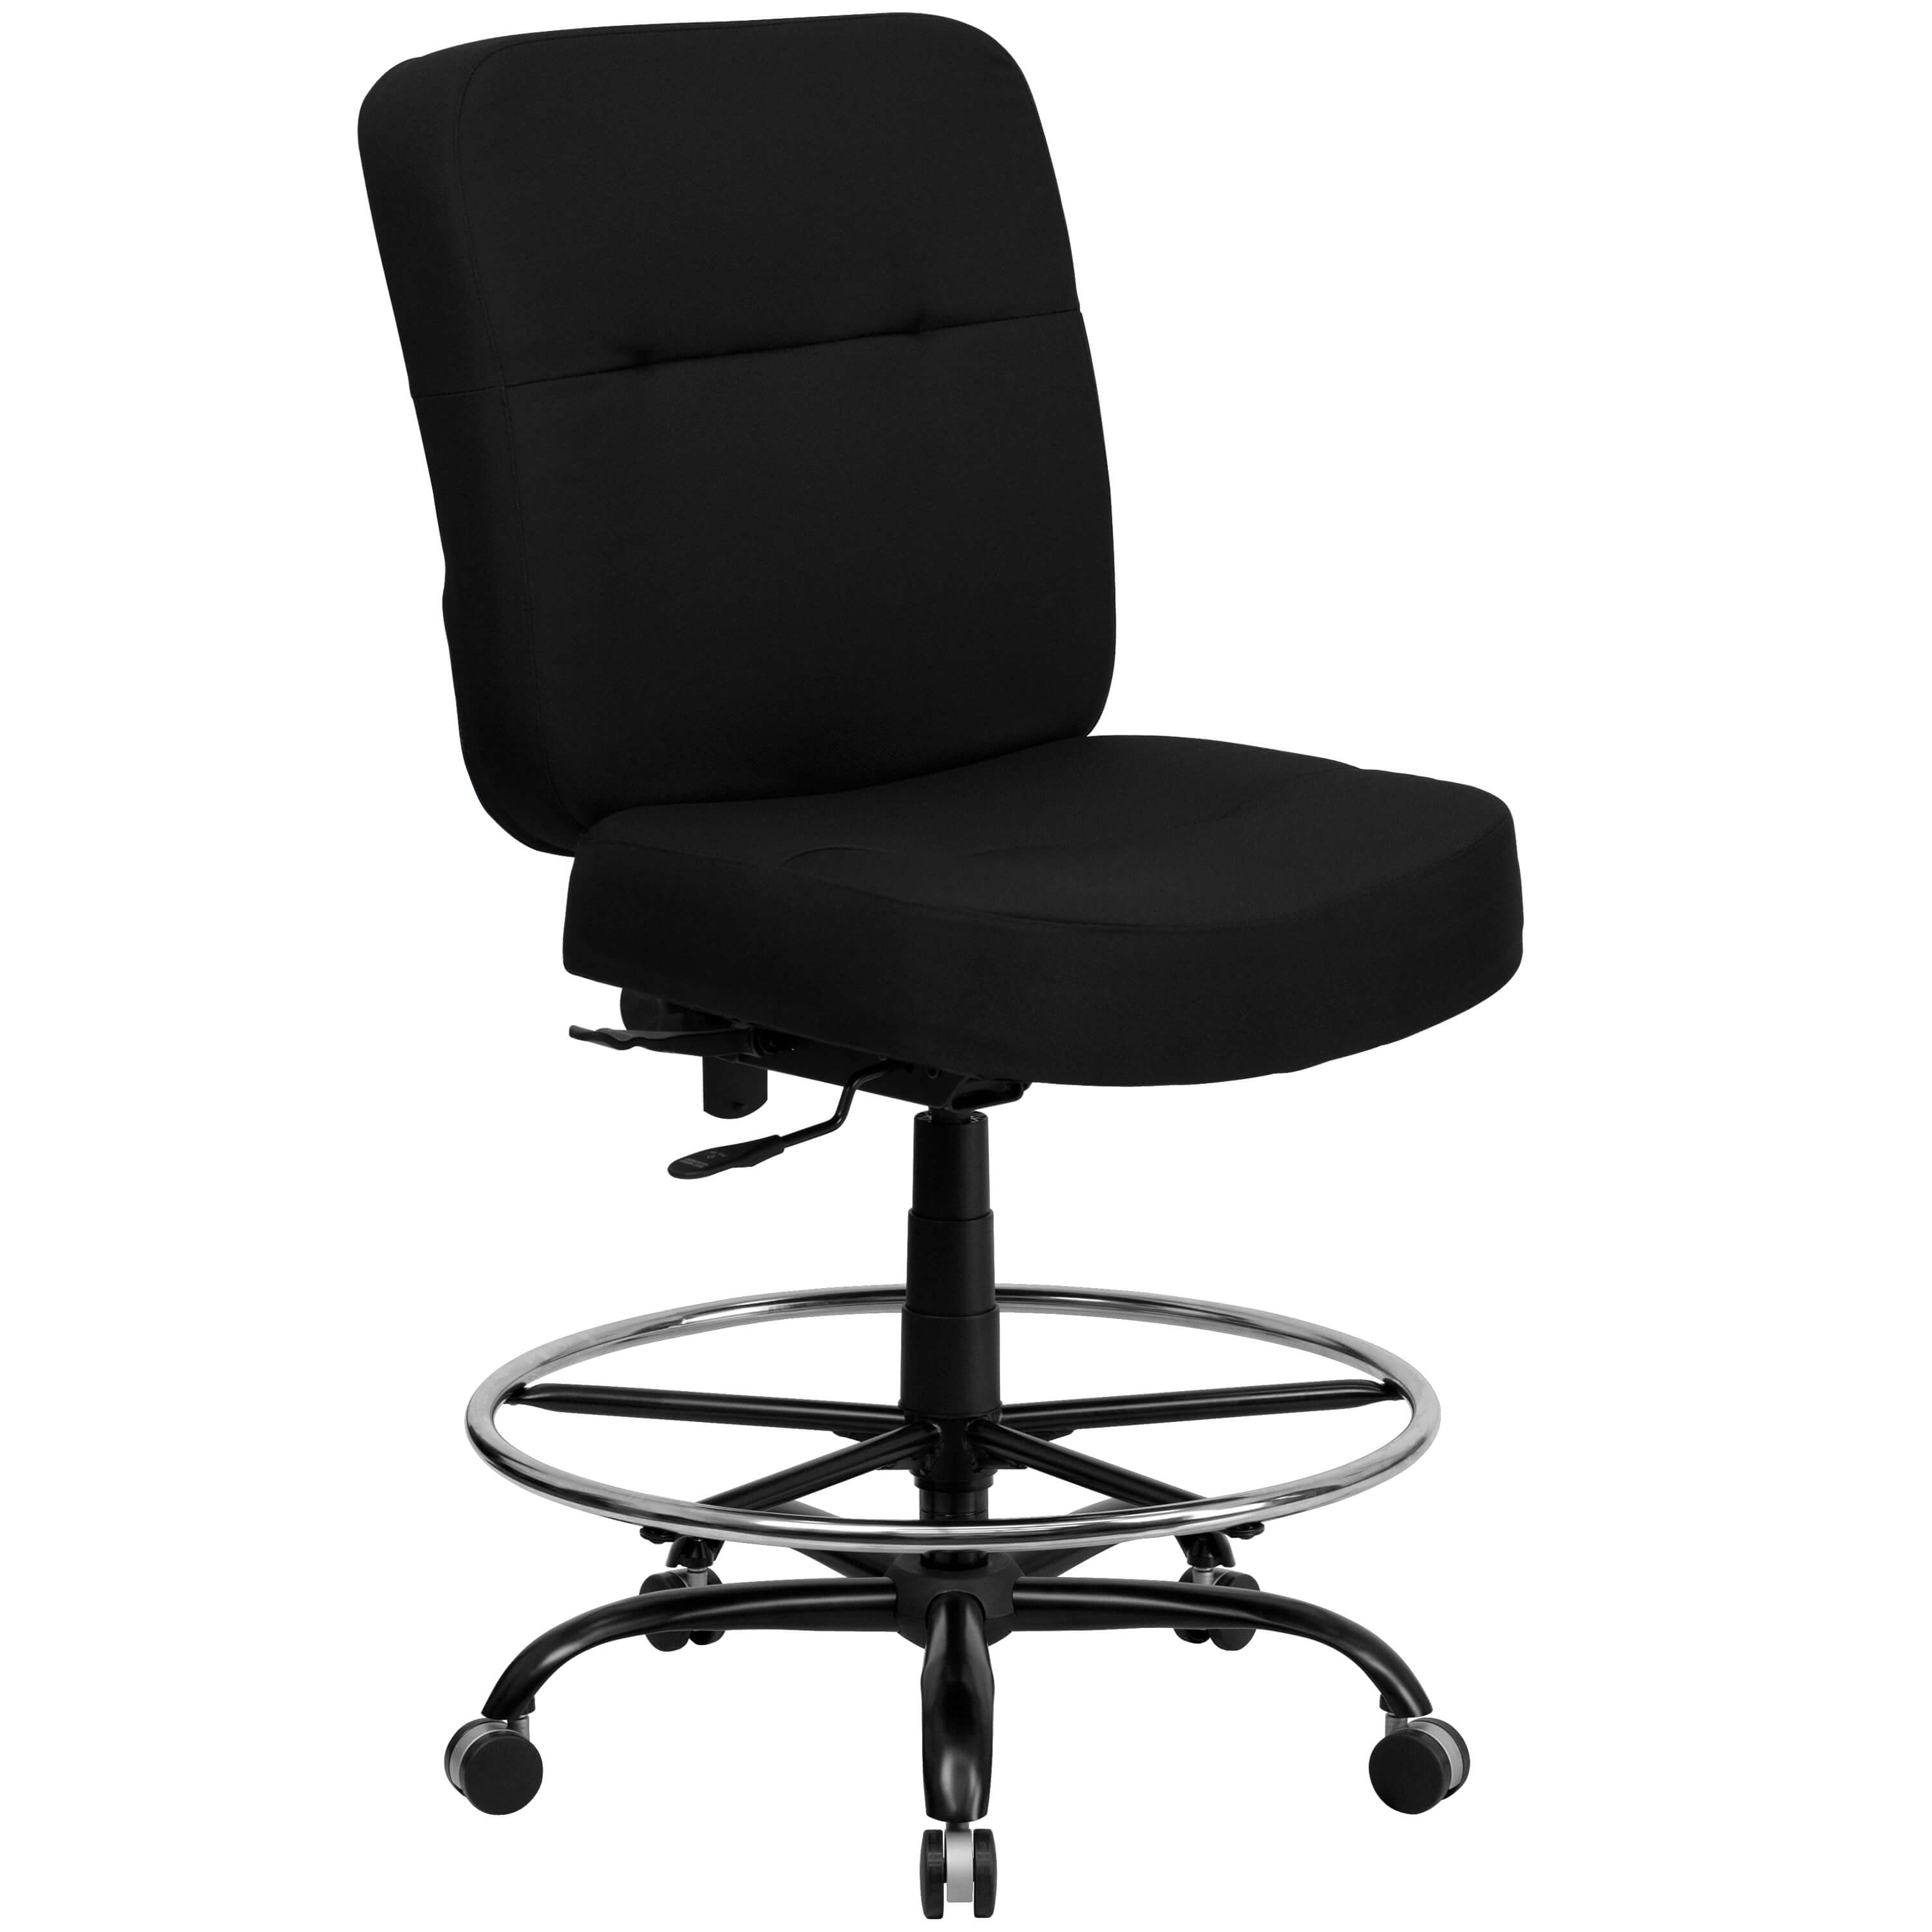 big-and-tall-office-chairs-high-weight-capacity-chairs.jpg